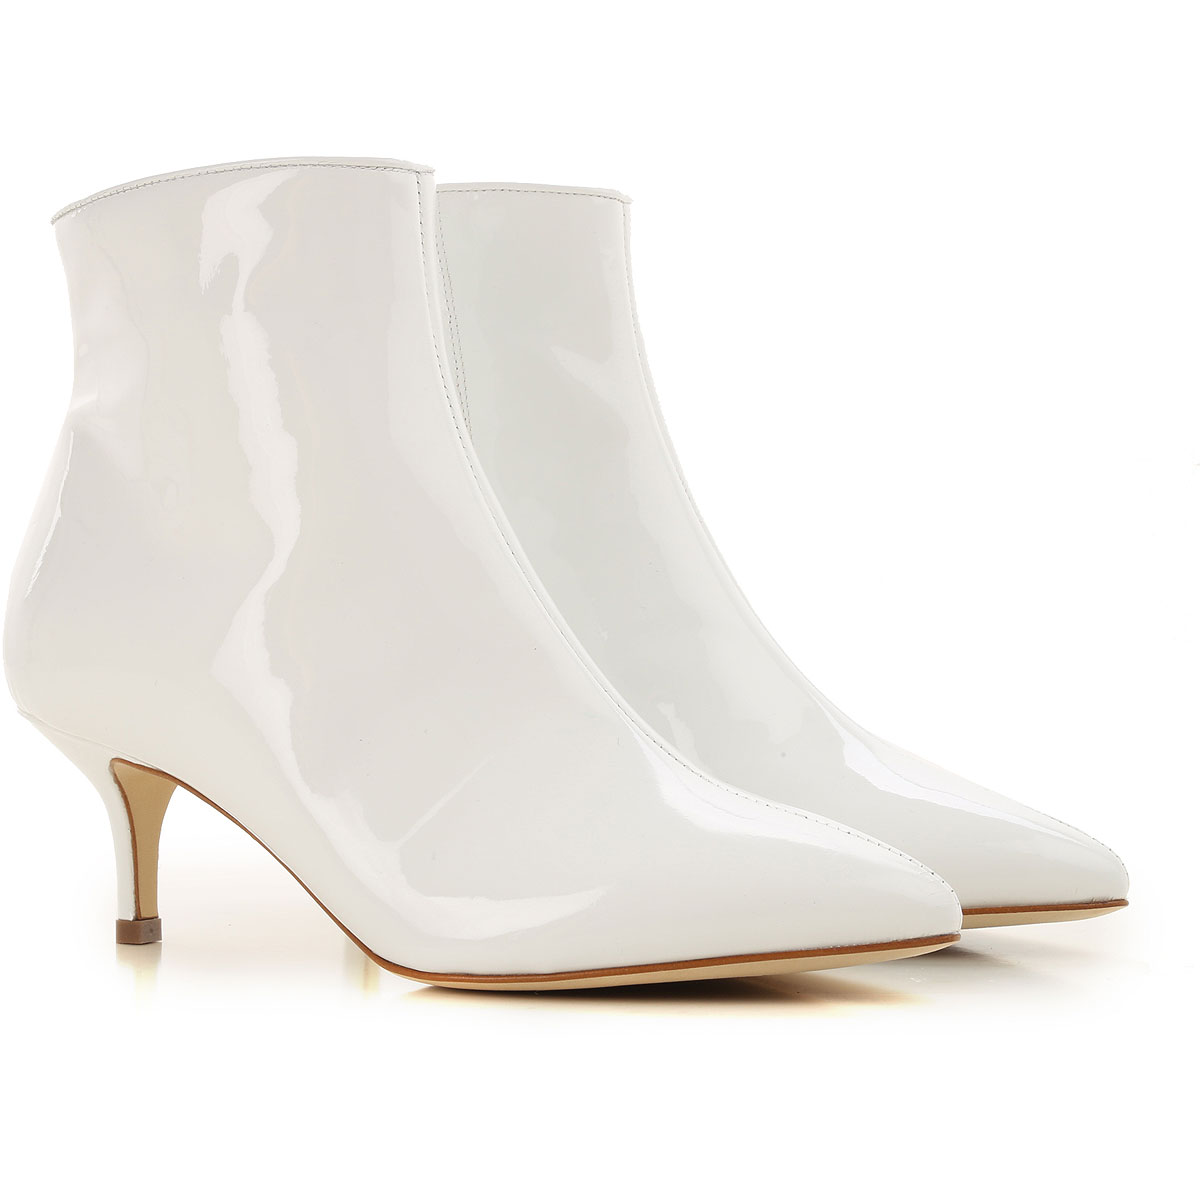 Image of Polly Plume Boots for Women, Booties, White Snow, Patent, 2017, 6 7 8 9